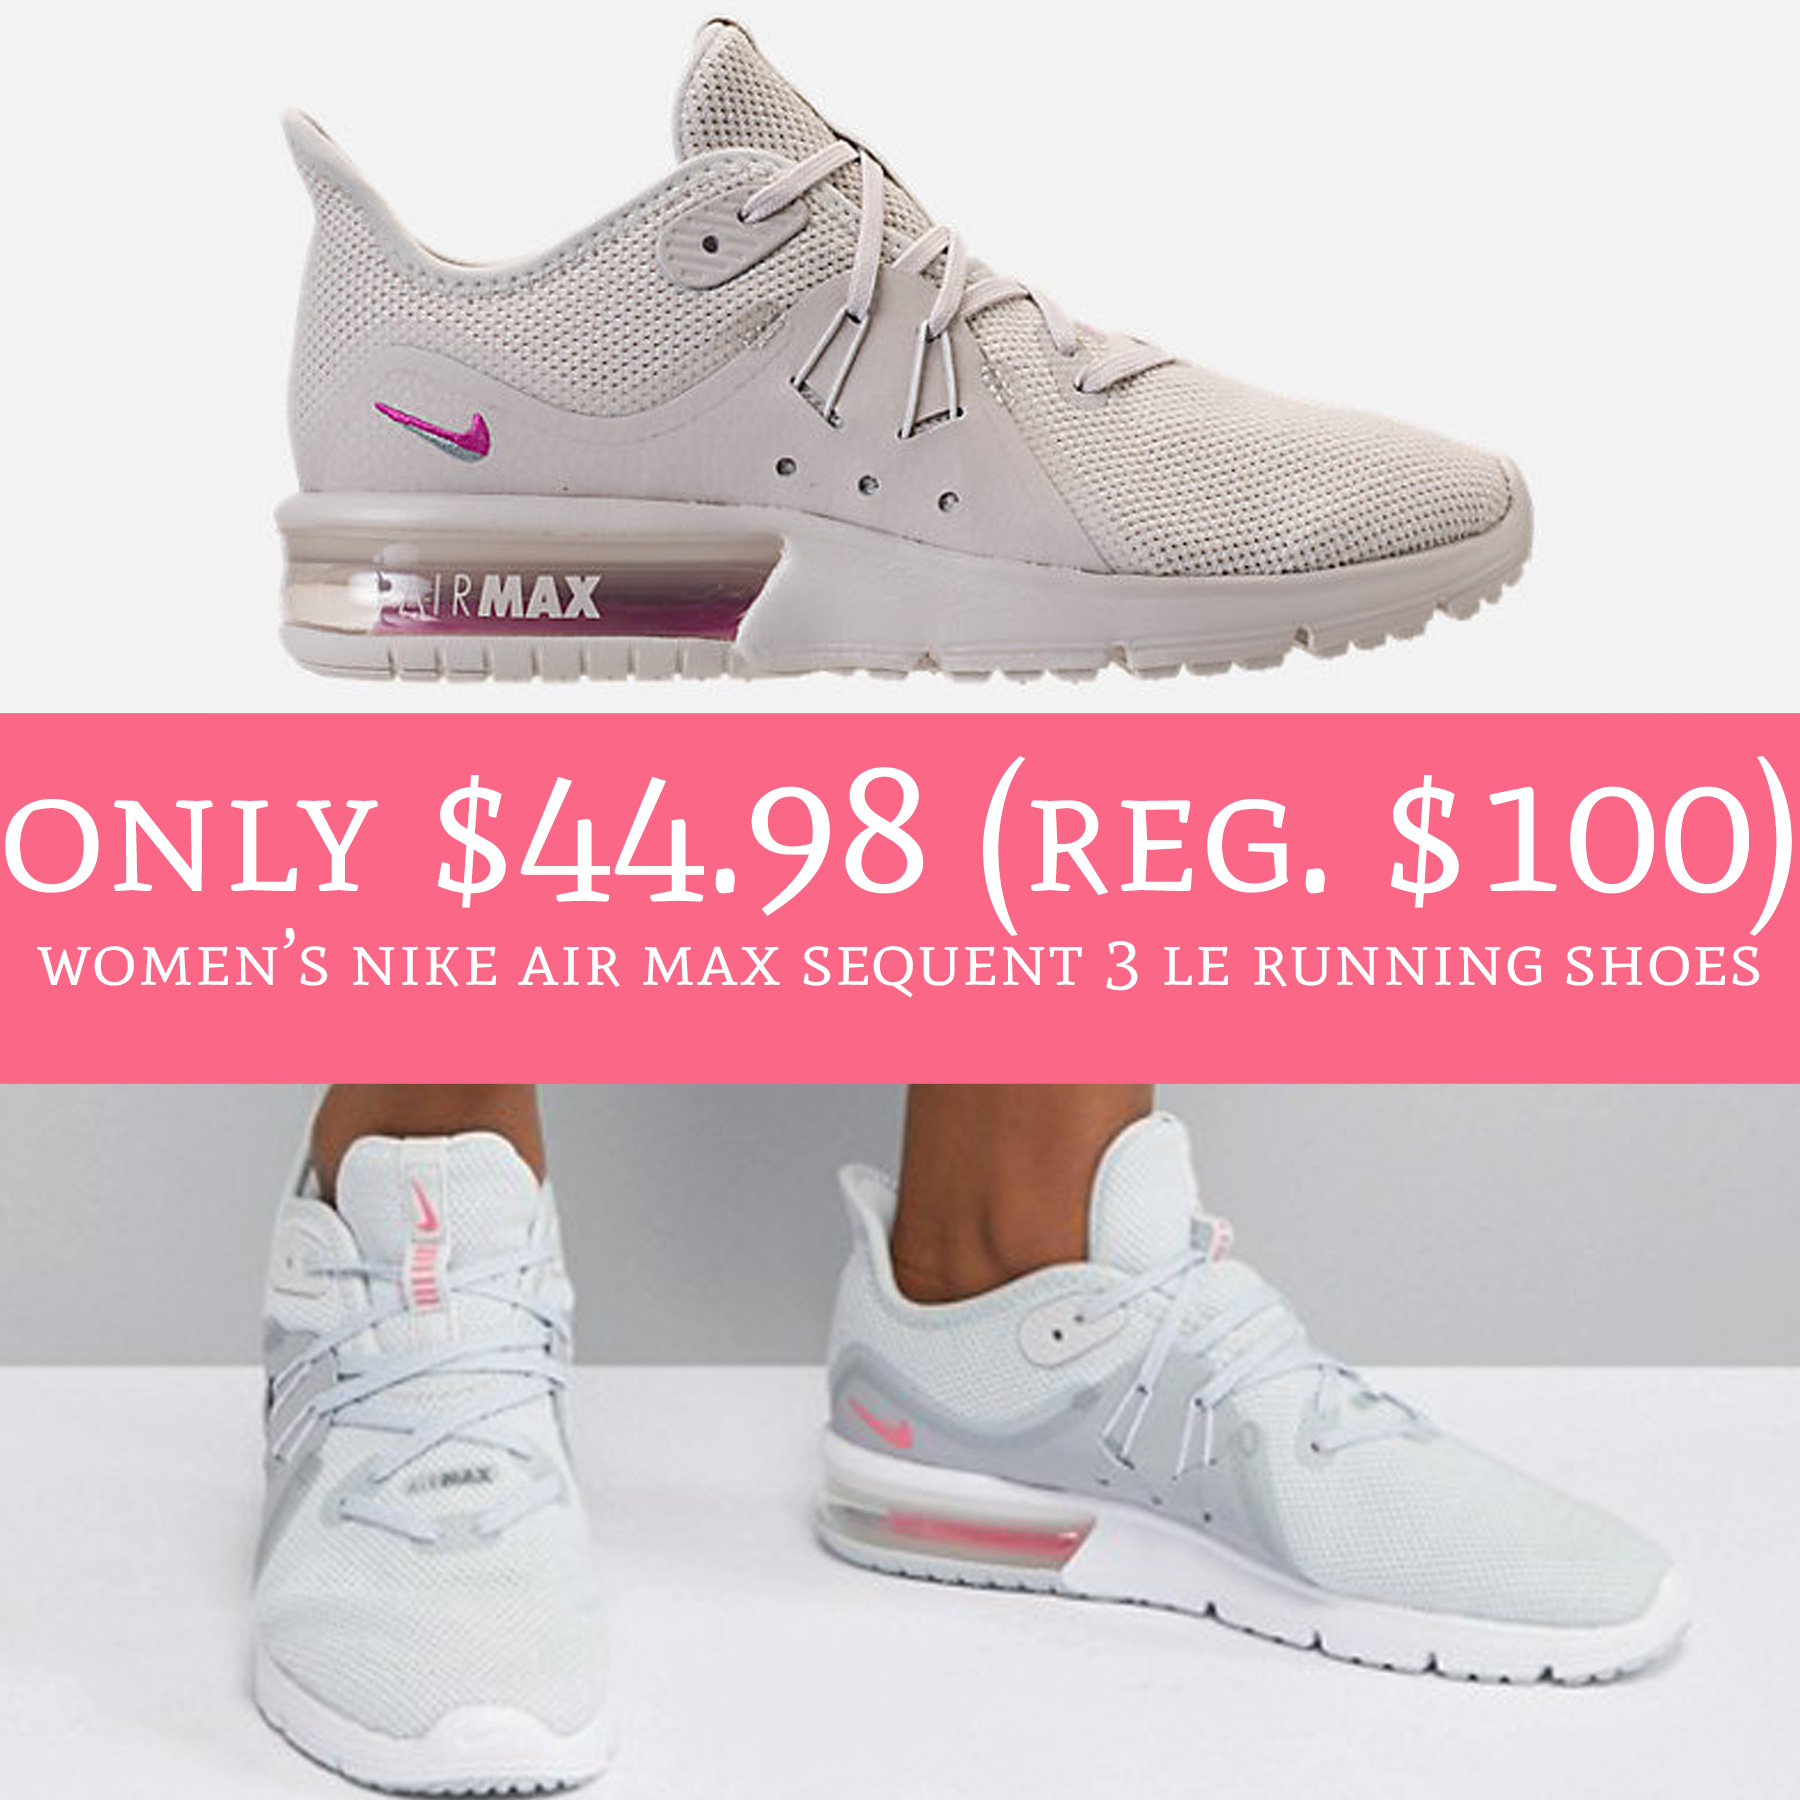 best service 48c2b 348bb Lowest price alert! 🔥. Run over to FinishLine.com where you can order Women s  Nike Air Max Sequent 3 ...